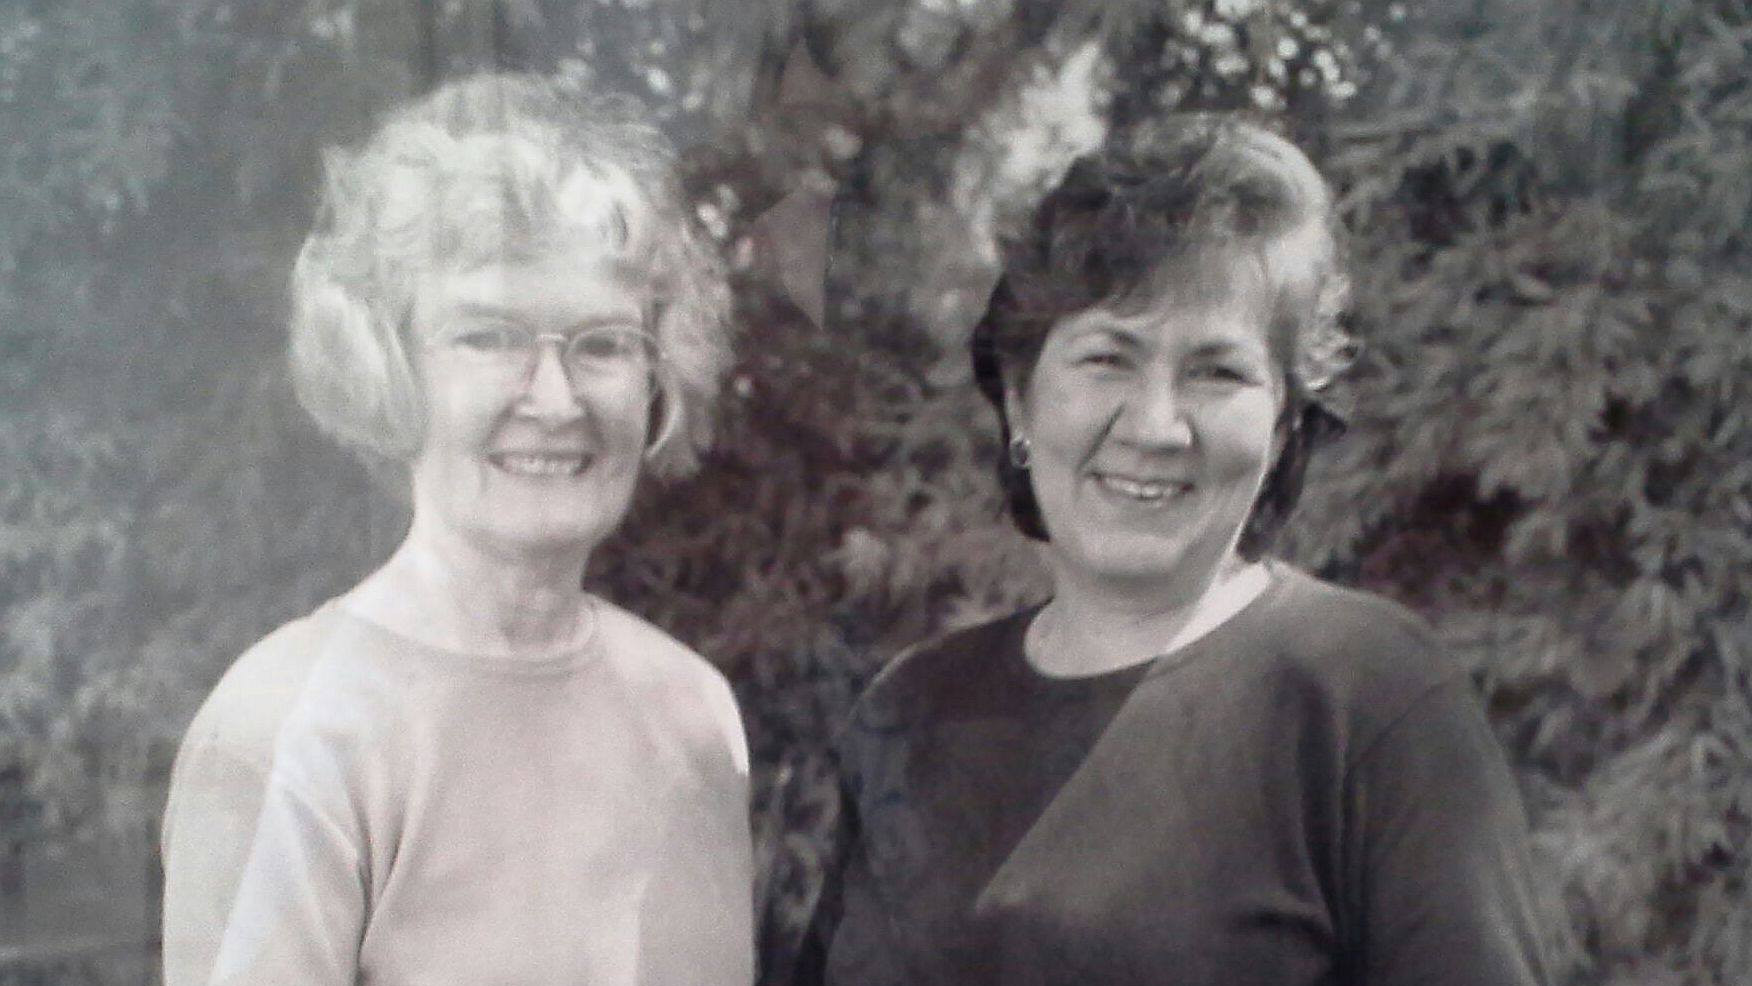 Visitation House Ministries was founded by Sisters Neomi Hayes and Yolanda Tarango in 1985. Homeless mothers with young children are empowered through housing, education, employment, and a caring community as they become self-sufficient members of society.